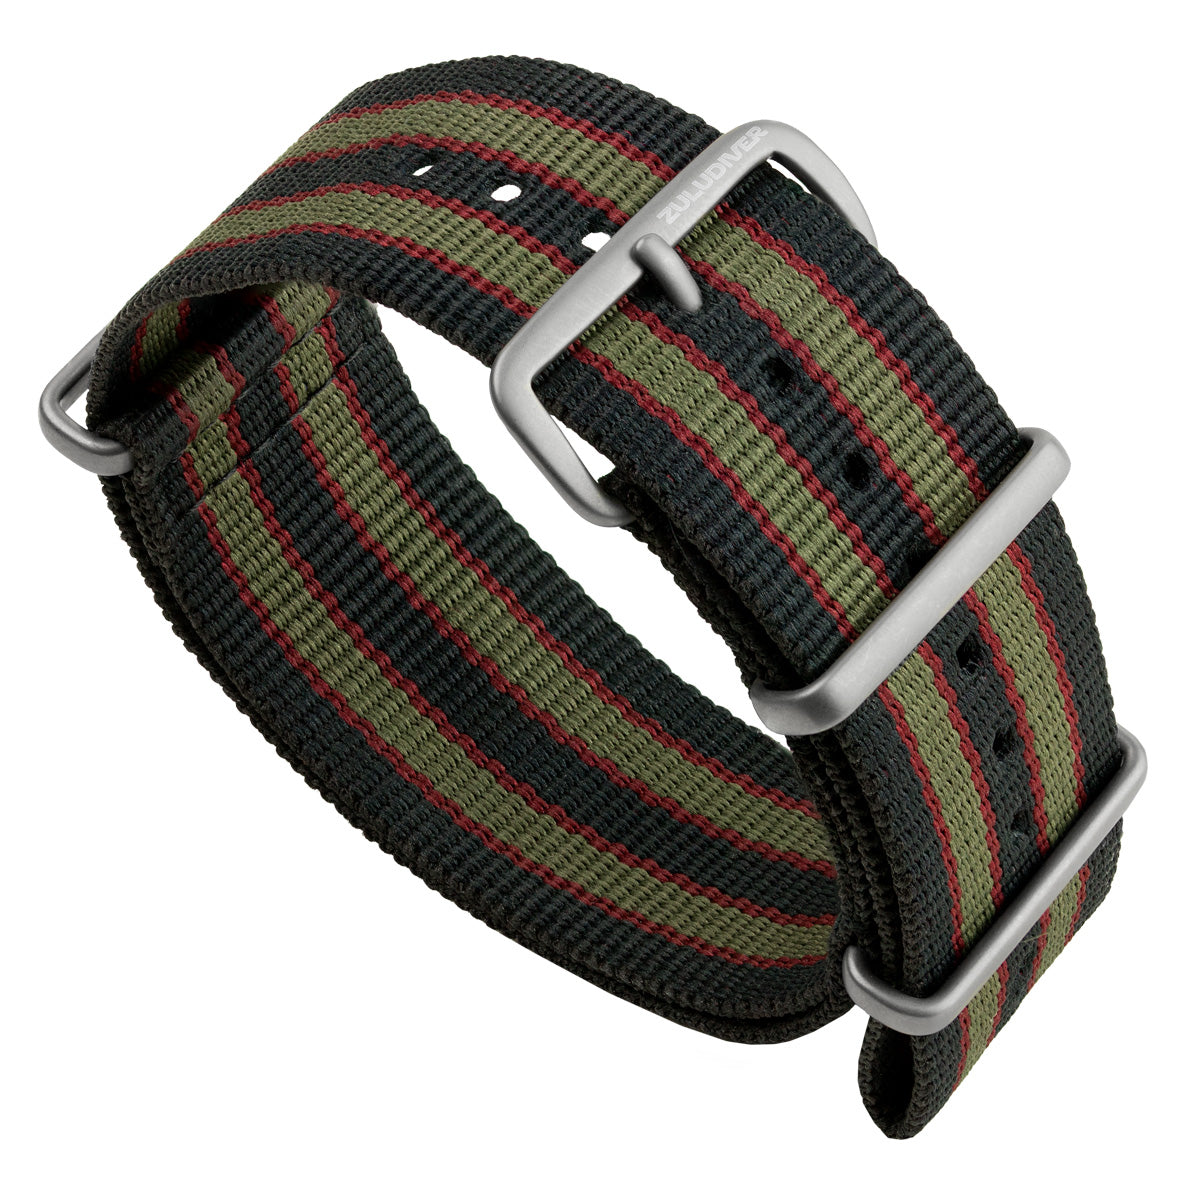 ZULUDIVER Vintage Bond NATO Watch Strap